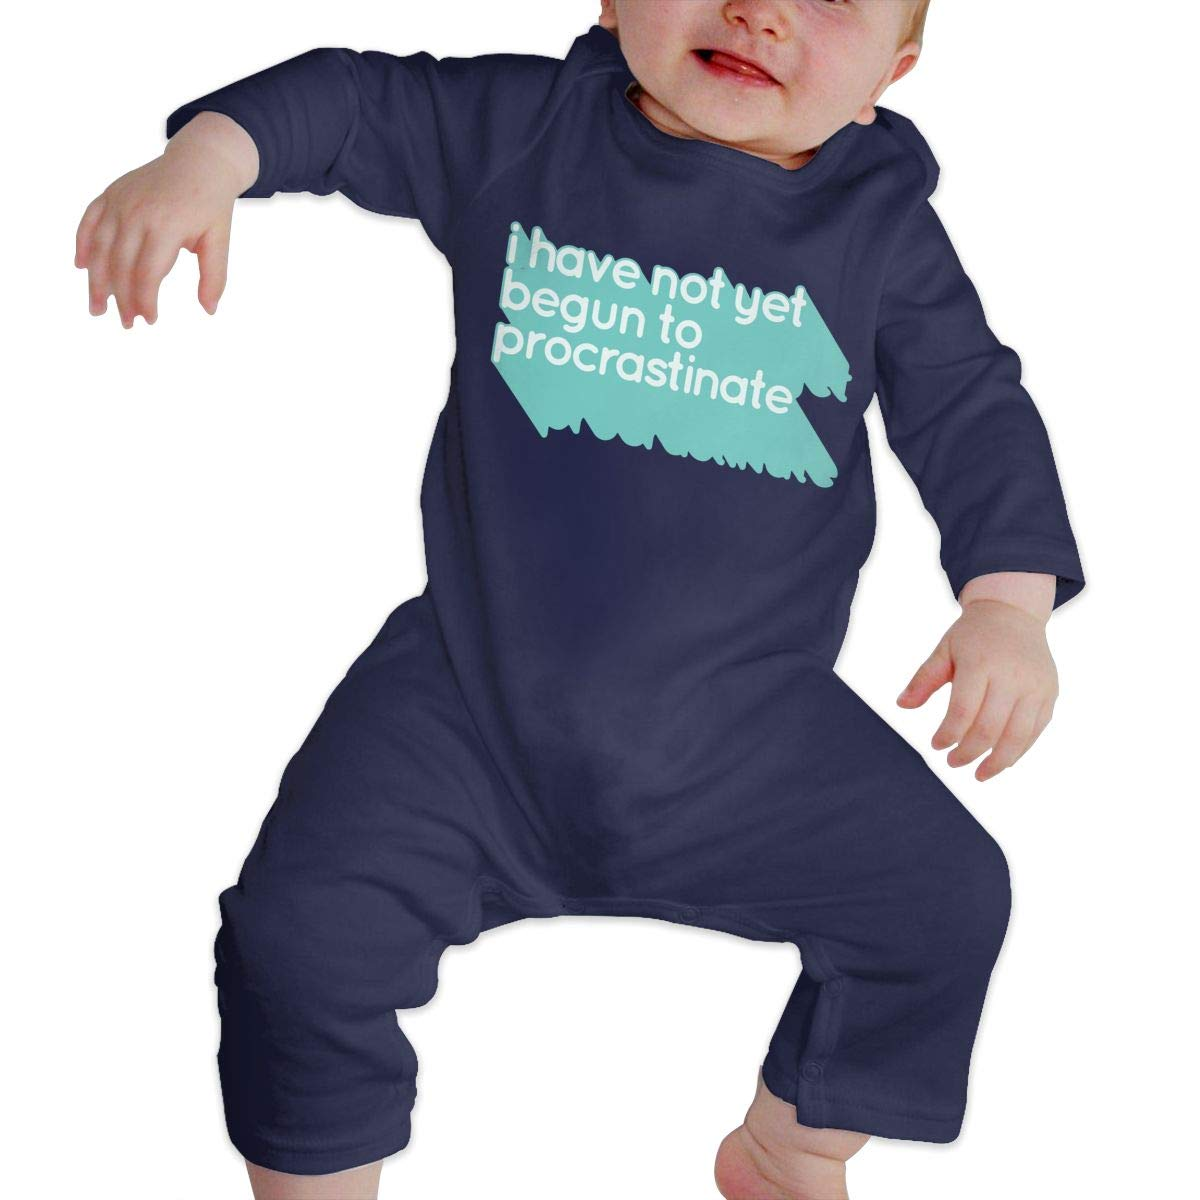 Baby Boy Girl Long Sleeved Coveralls NOT Begun to Procrastinate Baby Clothes